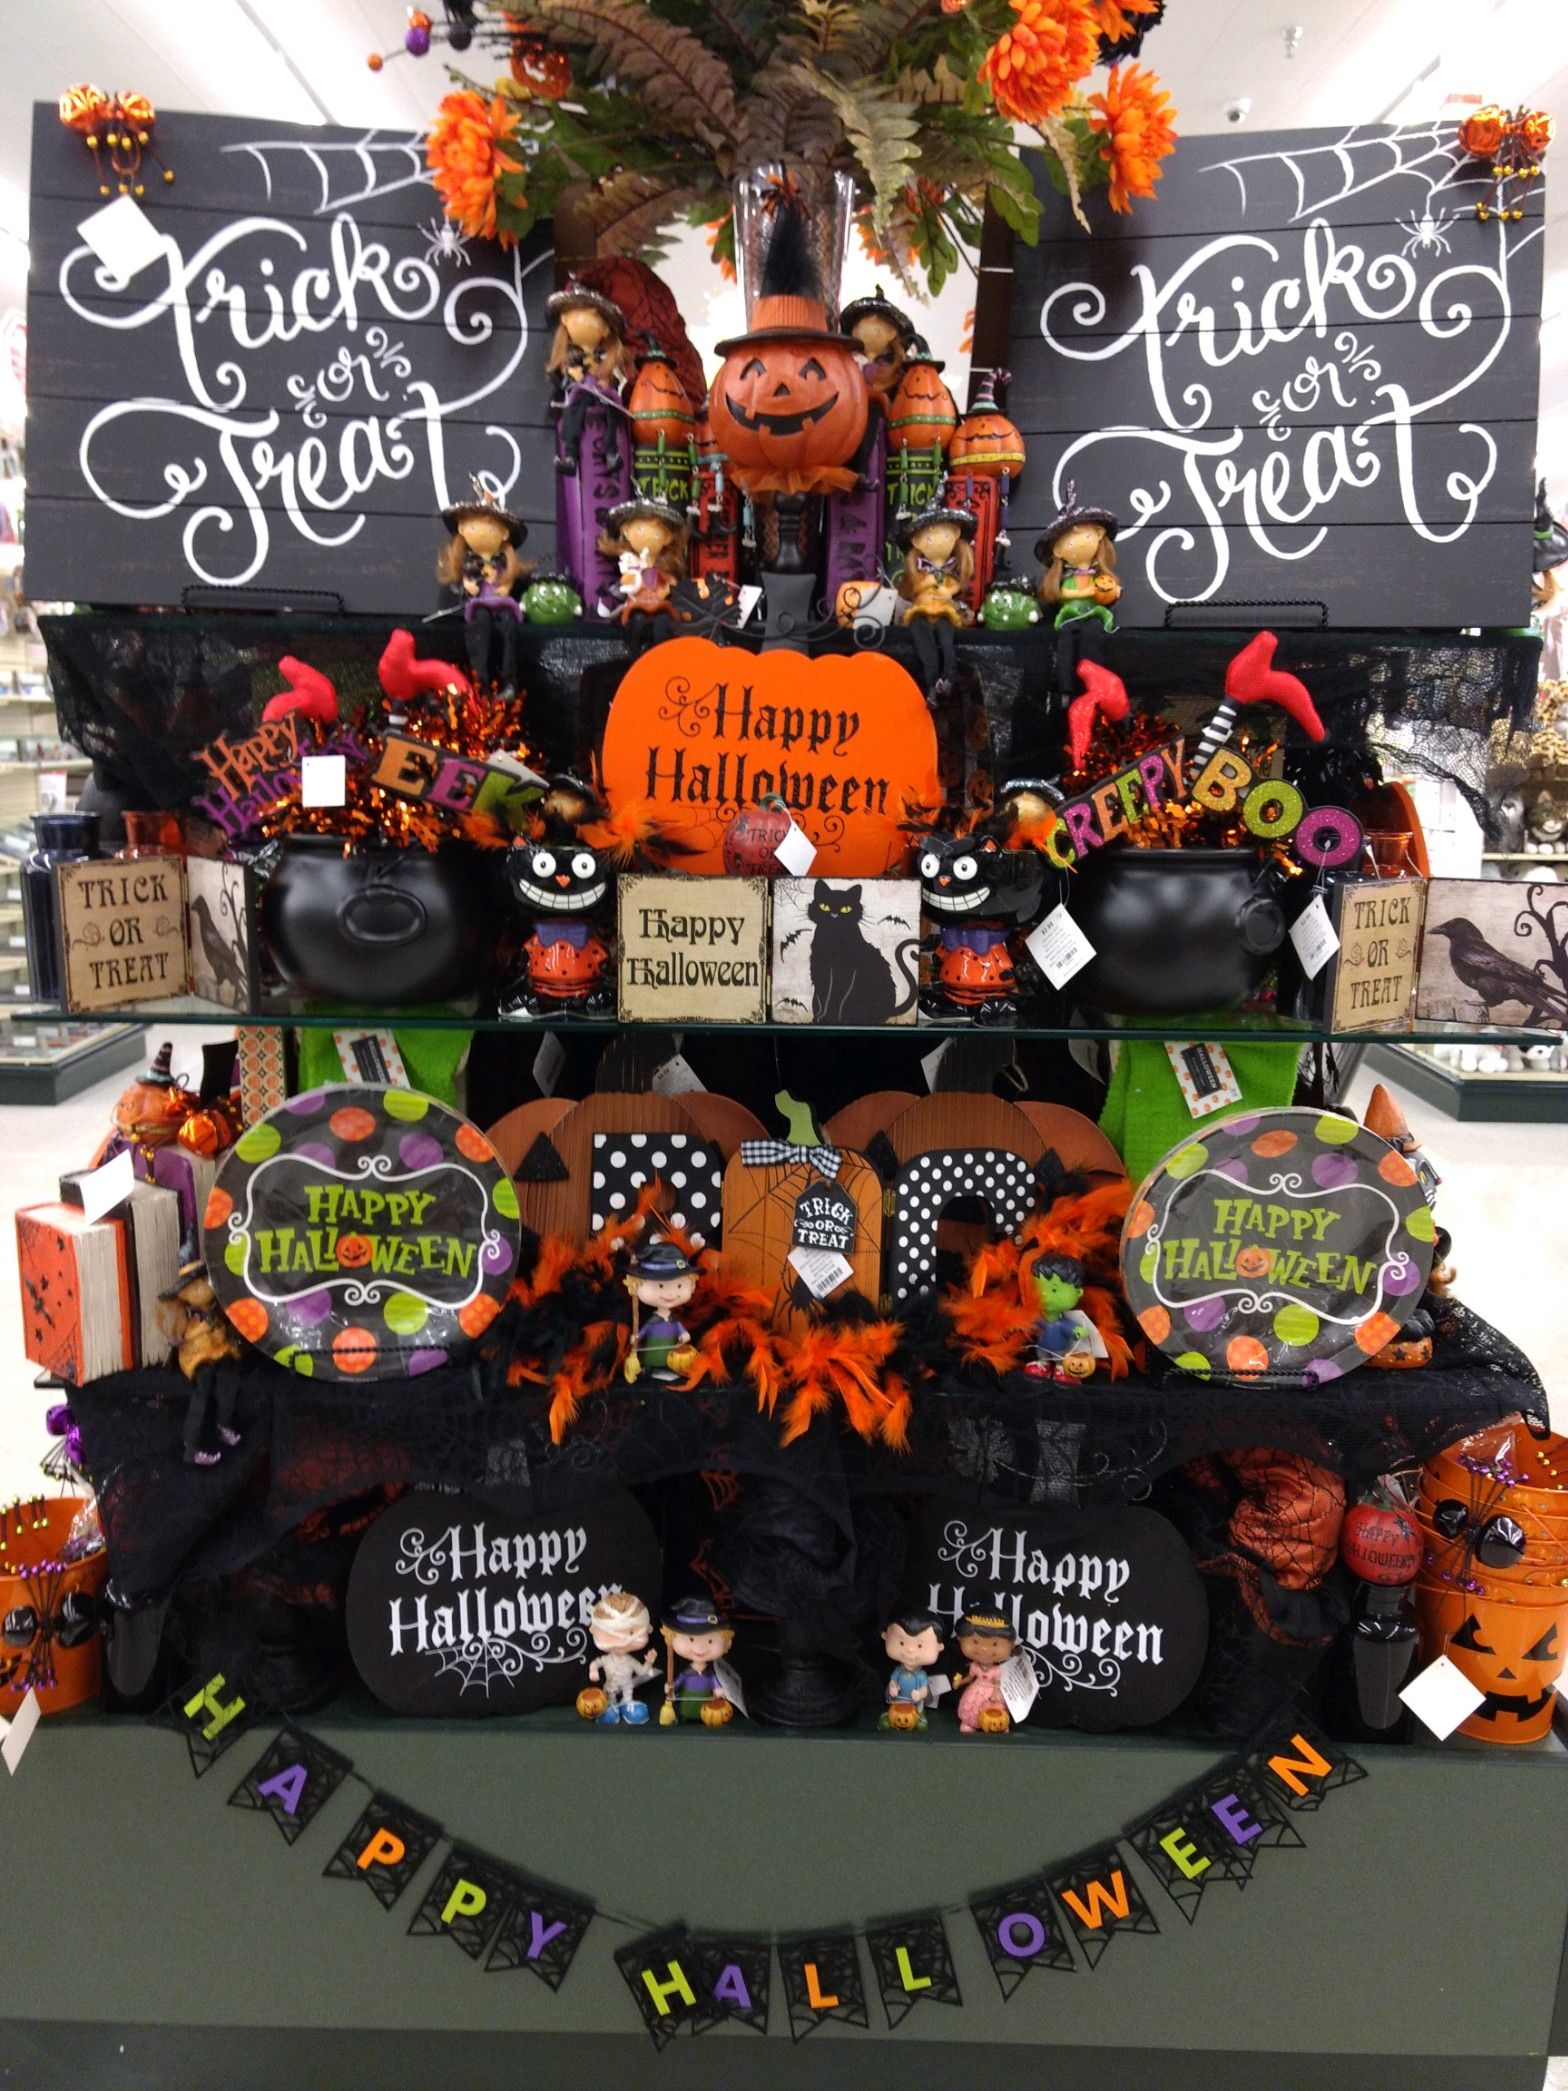 Hobby Lobby Halloween Decorations 2019.Hobby Lobby Halloween Hobby Lobby Merchandising D245 In